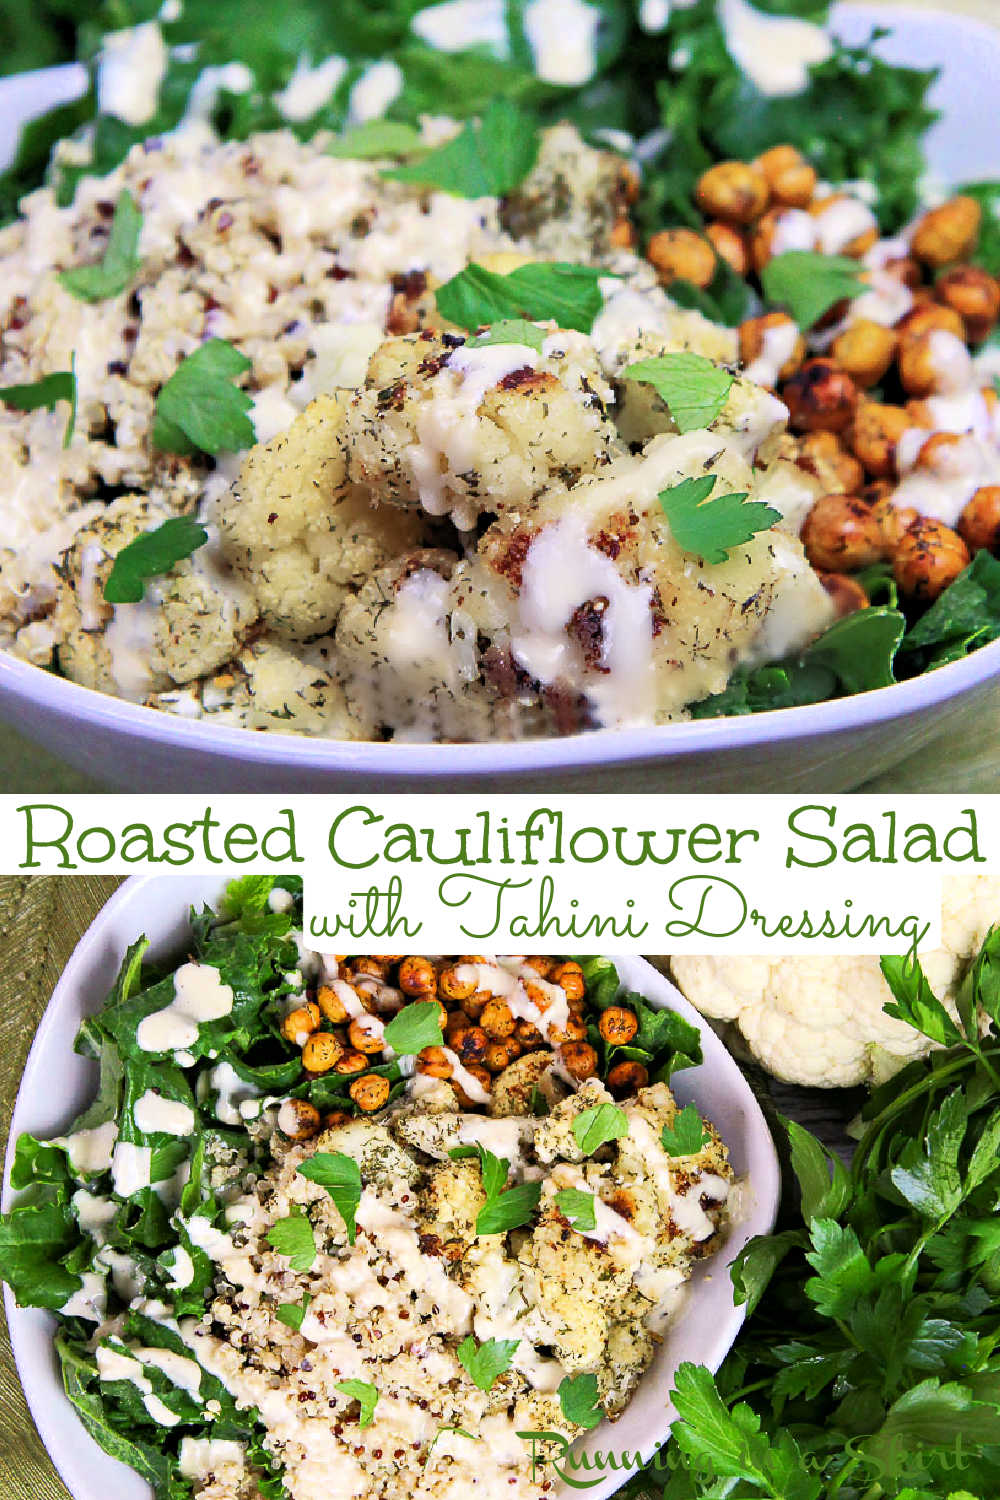 Roasted Cauliflower Salad with Crispy Ranch Chickpeas and with Lemon Tahini Dressing recipe. This is the best hearty roasted cauliflower salad with tahini, kale, quinoa, and with chickpeas. The perfect healthy yet filling vegan salad with a creamy dressing. Clean eating and delicious. Vegan, Vegetarian, Gluten Free, Whole 30, Low Carb / Running in a Skirt #vegan #glutenfree #cleaneating #salad #cauliflower #healthyrecipes via @juliewunder